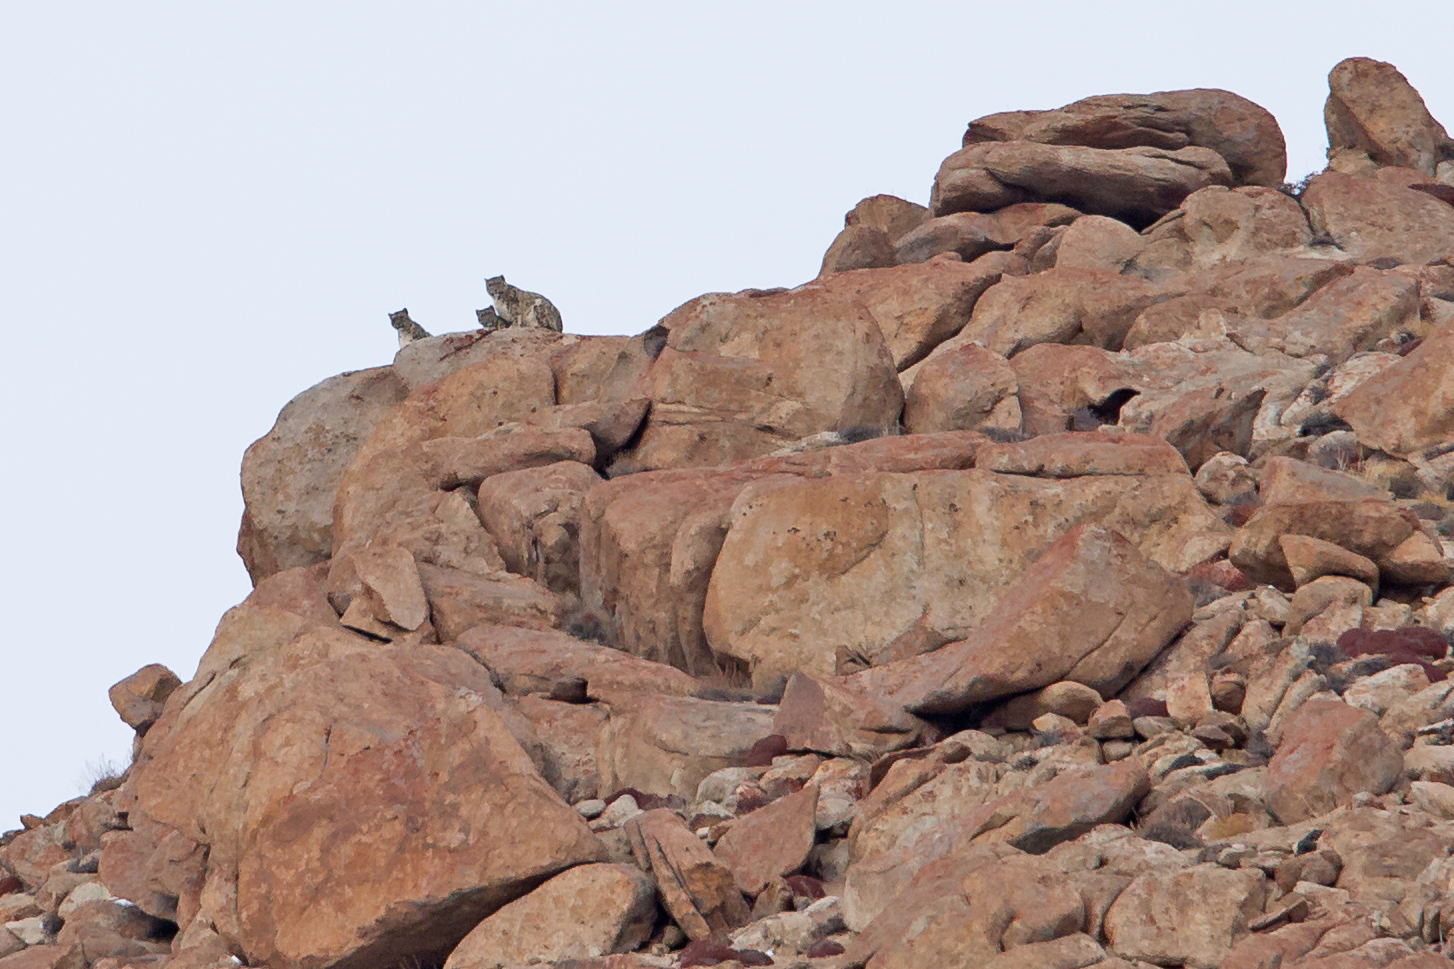 A family of three Snow leopards seen on our 2016 tour.